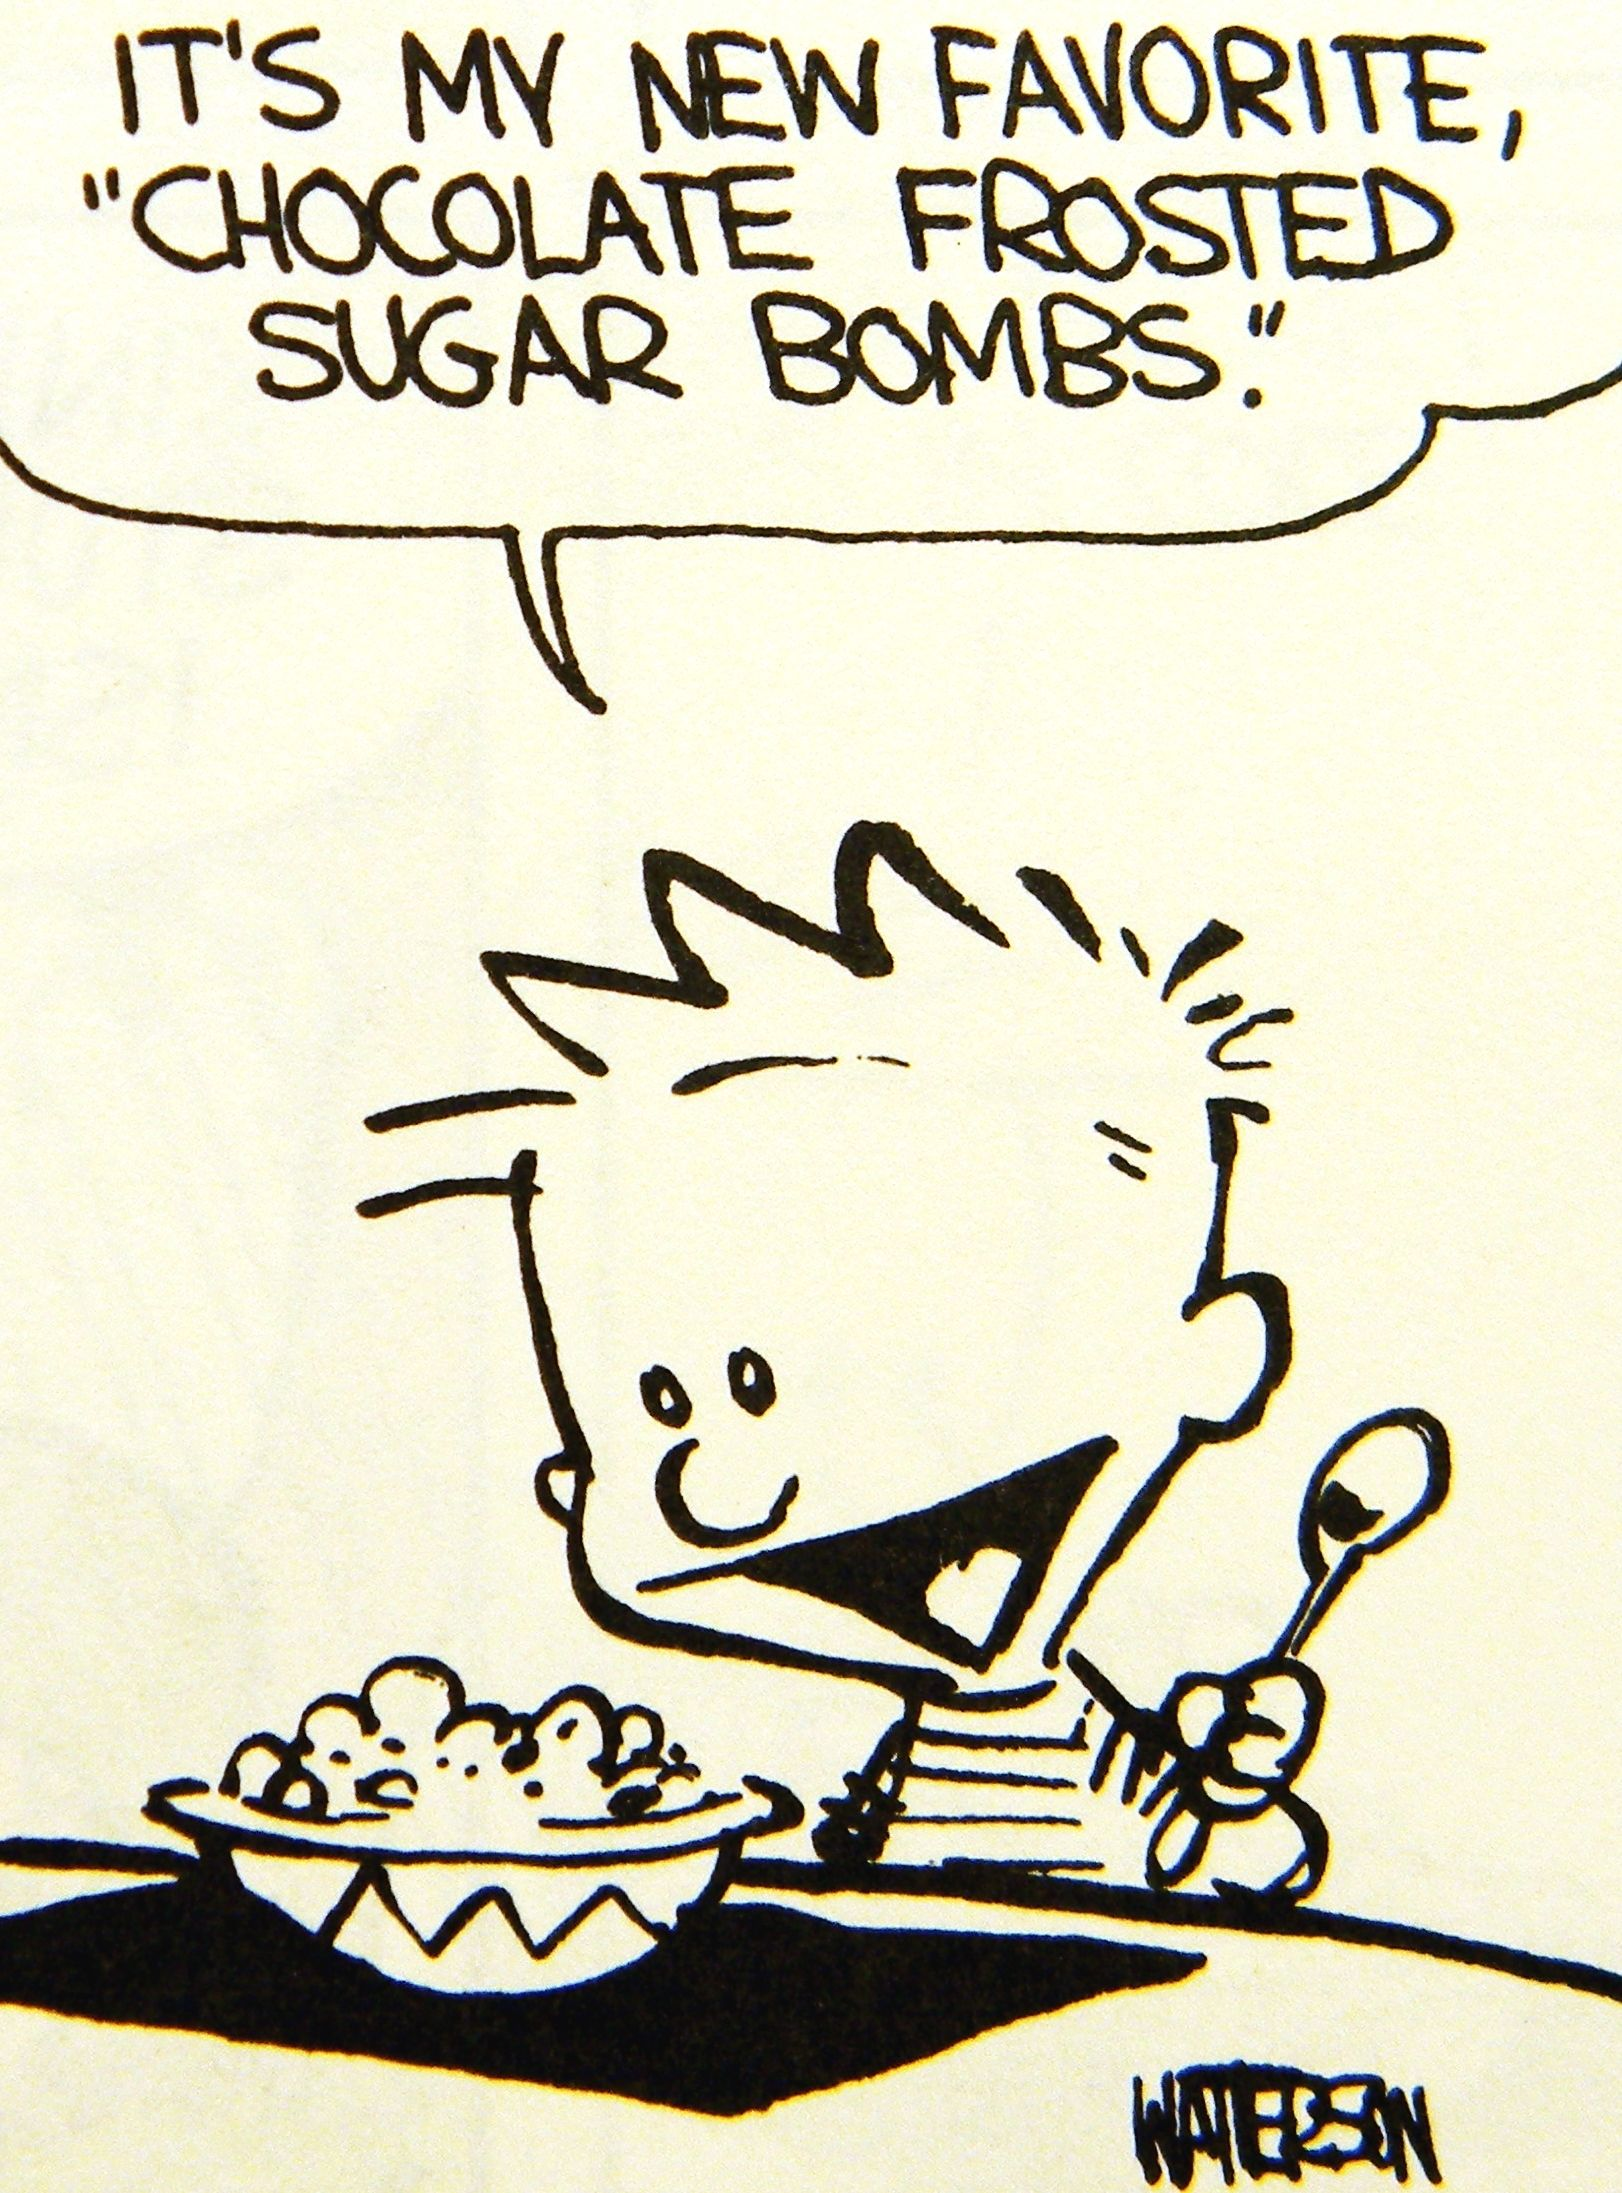 Calvin and Hobbes, Chocolate Frosted Sugar Bombs